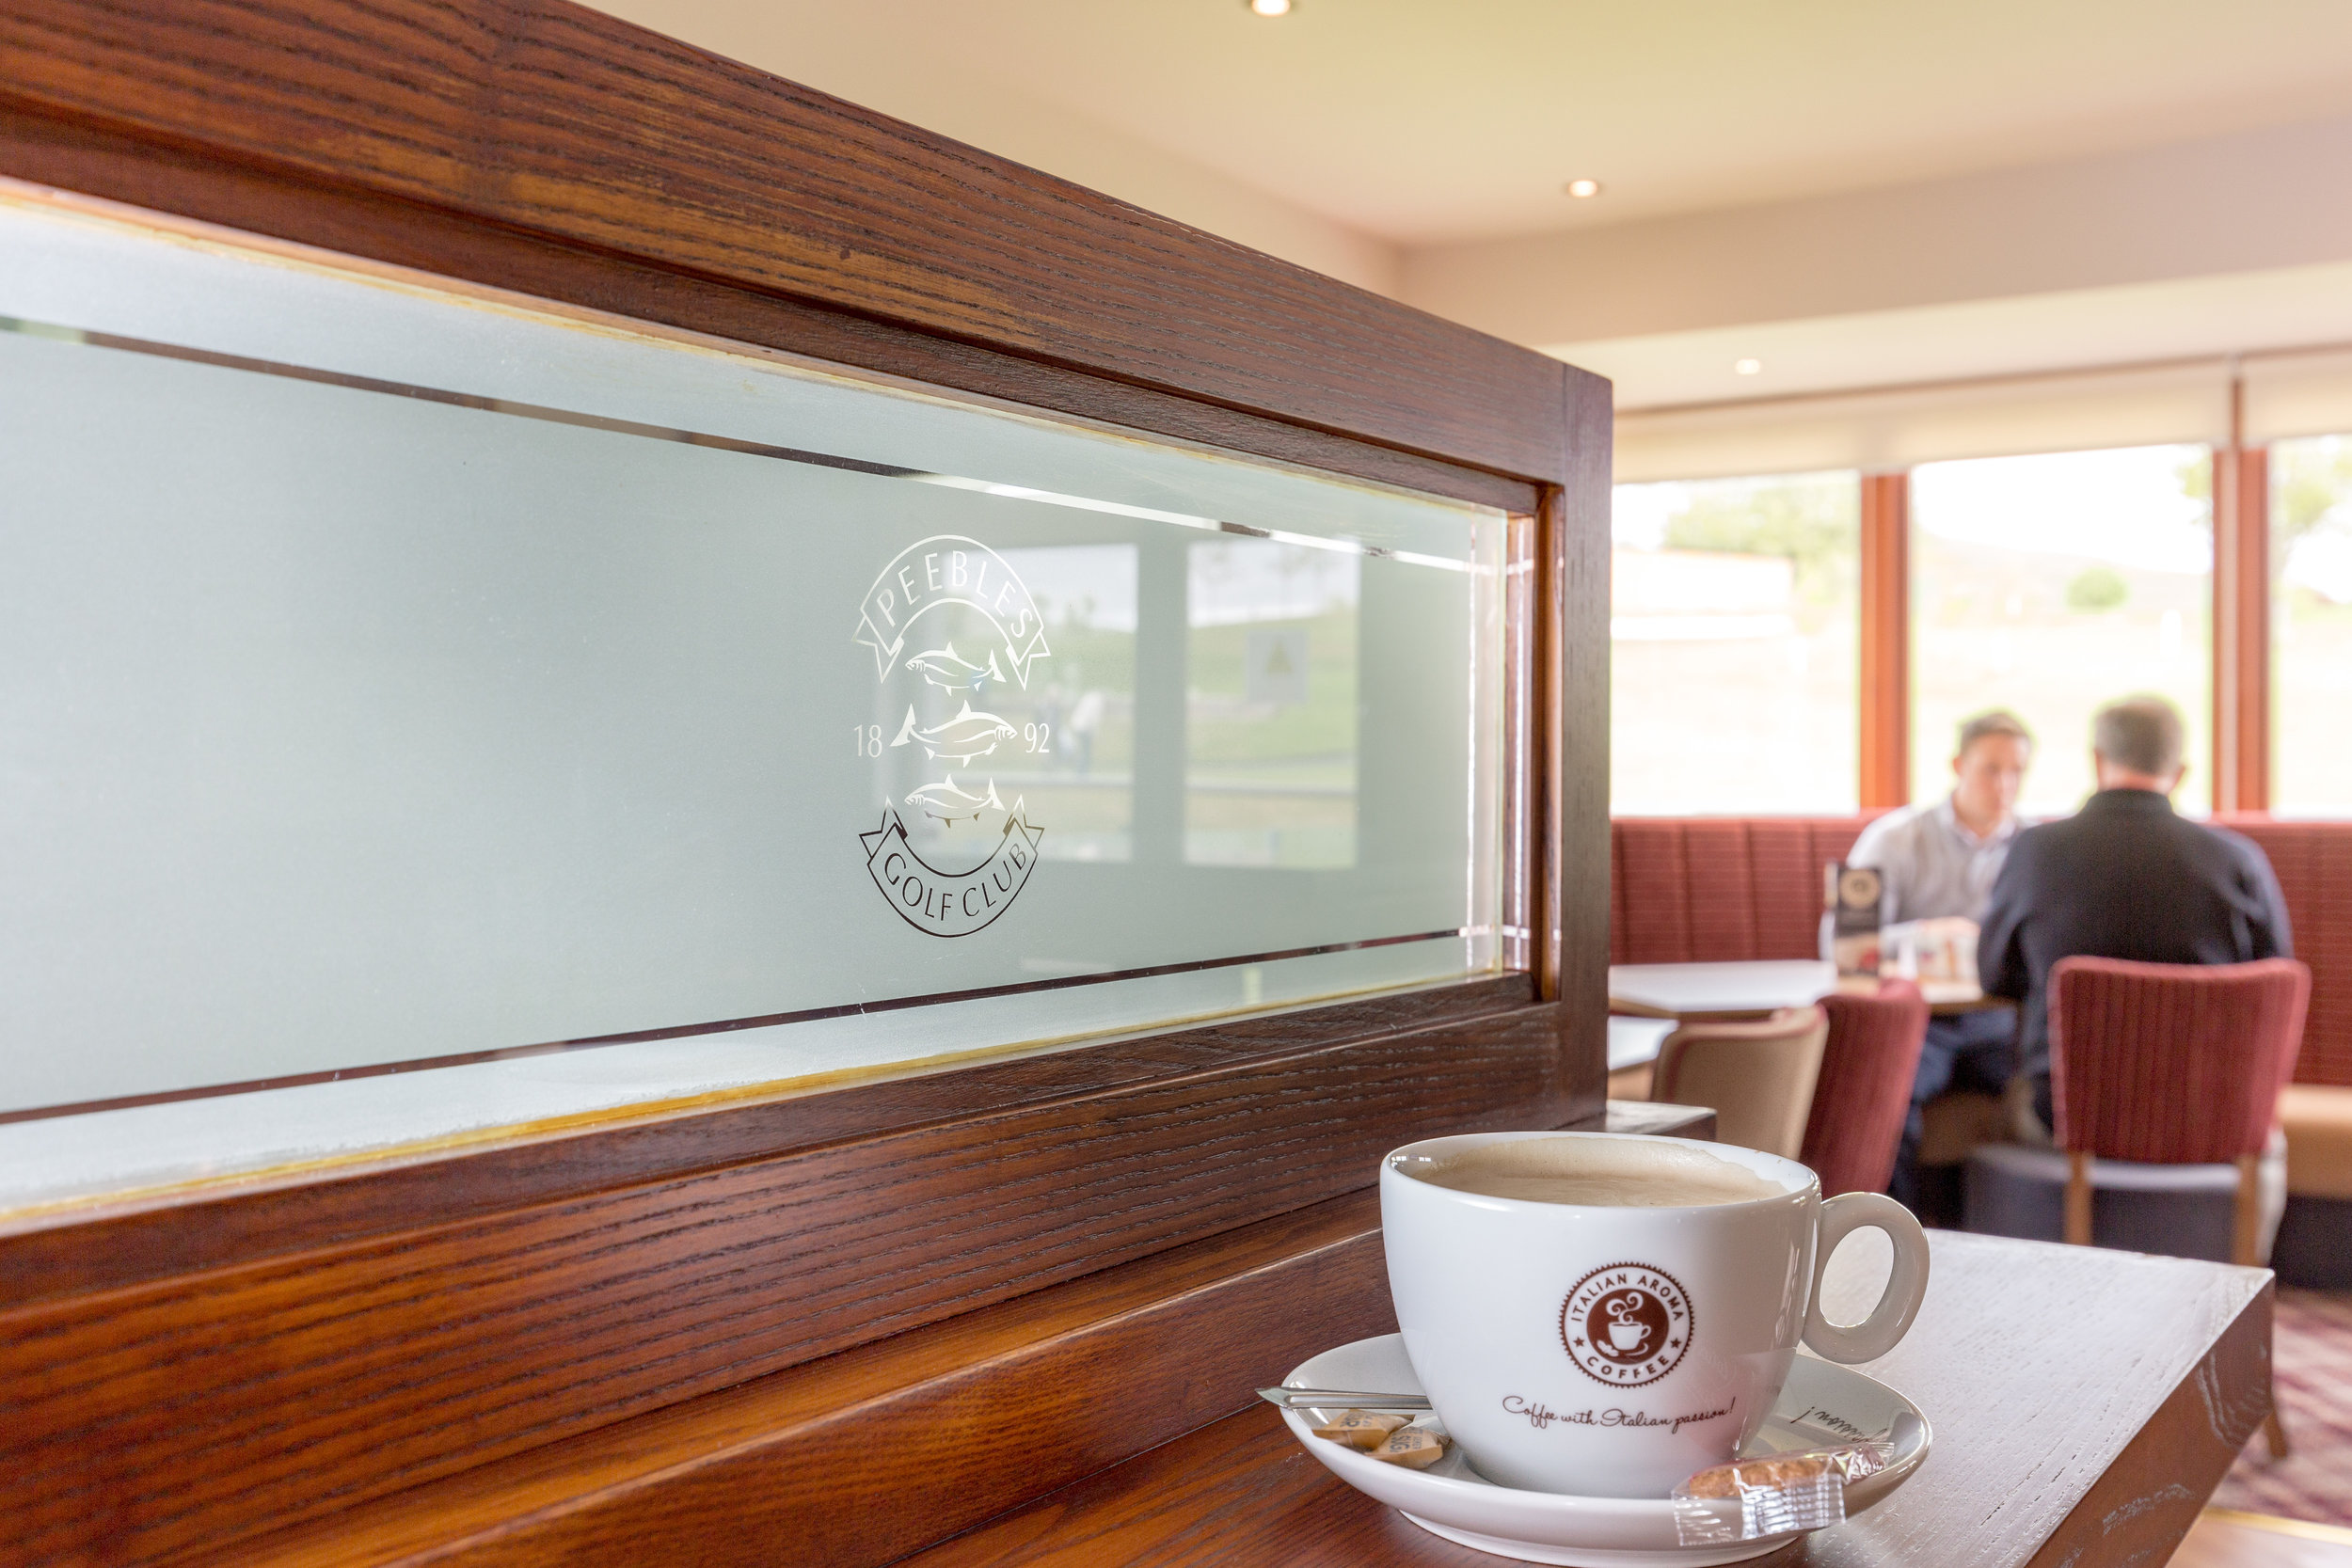 MEMBERS AND VISITORS CAN ENJOY OUR NEW RANGE OF ITALIAN AROMA BARISTA SERVED COFFEES, FLAVOURED TEAS AND HOT CHOCOLATE